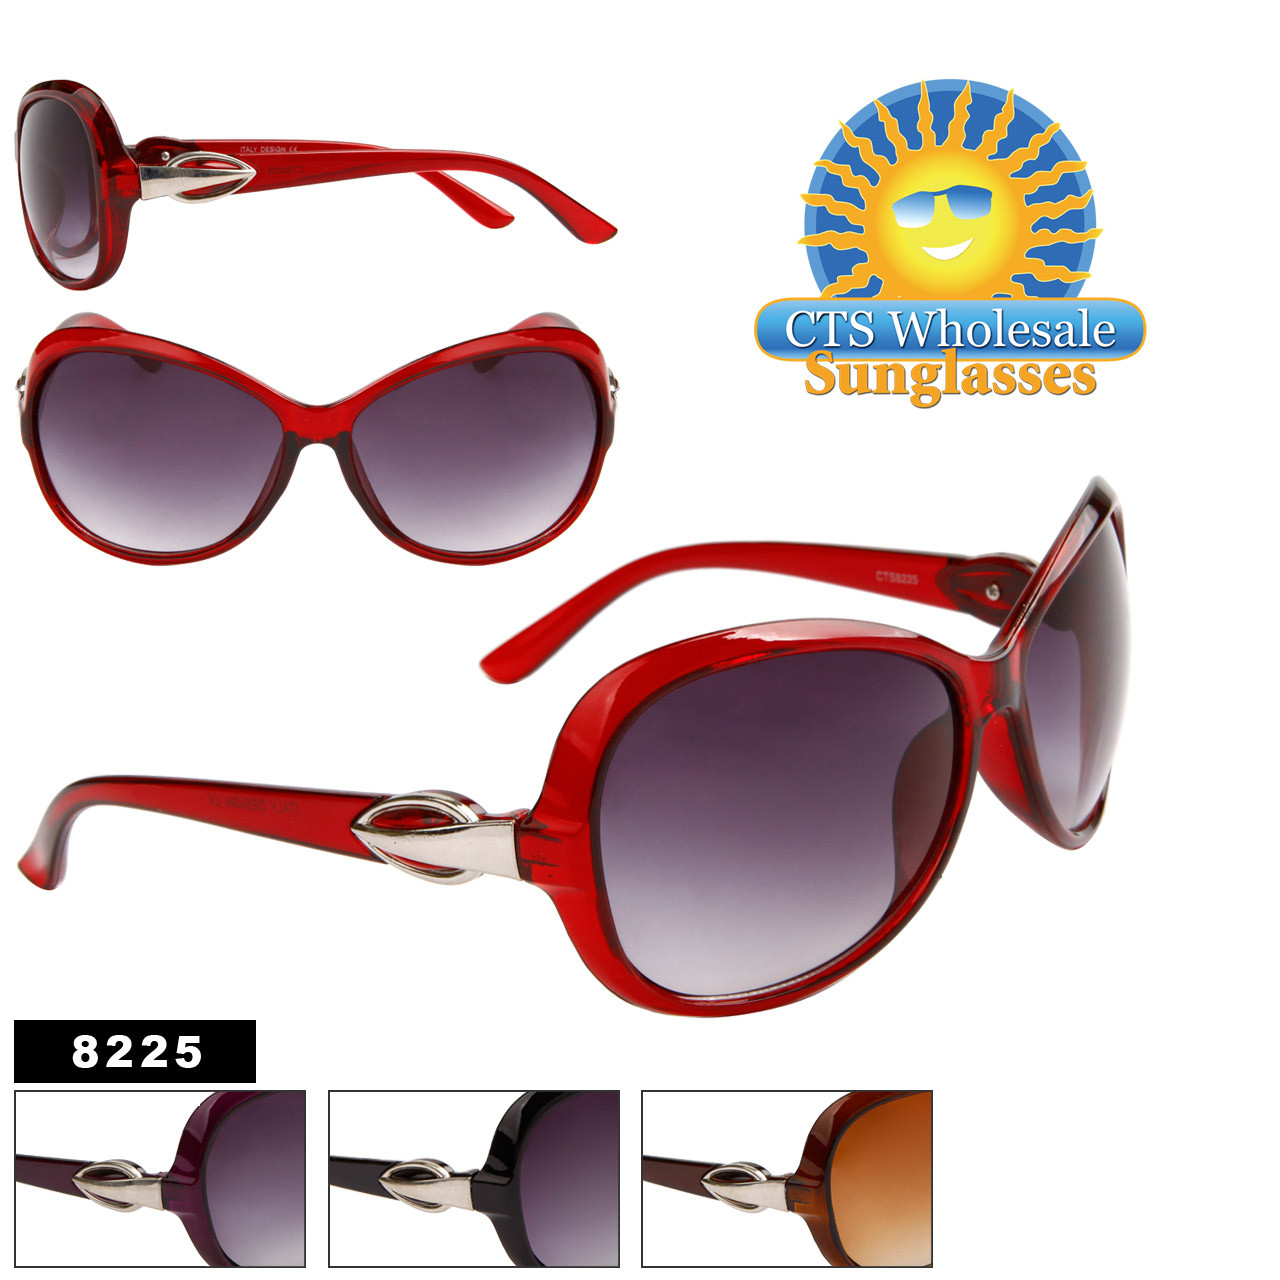 Women's Wholesale Designer Sunglasses - 8225